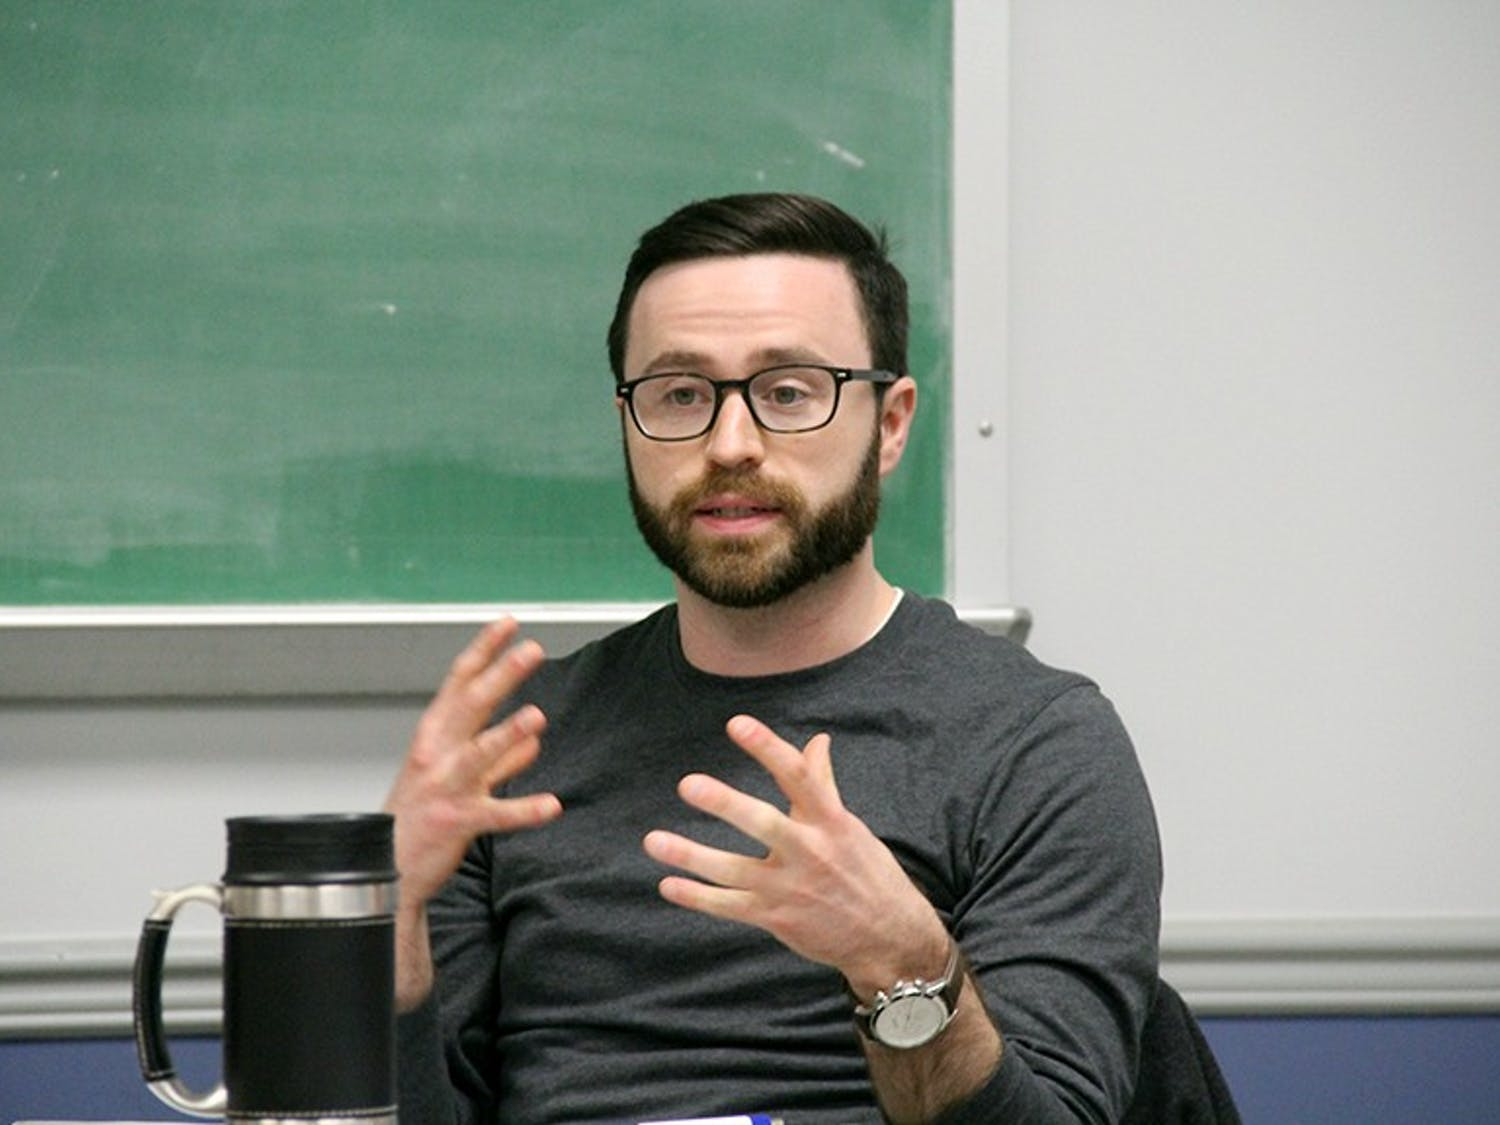 Luke Haumesser, the president's designee, attends a meeting with student government leaders. On Thursday, the student-led council of advocacy and leadership met to discuss a potential new budgeting process and UB's smoking policy.